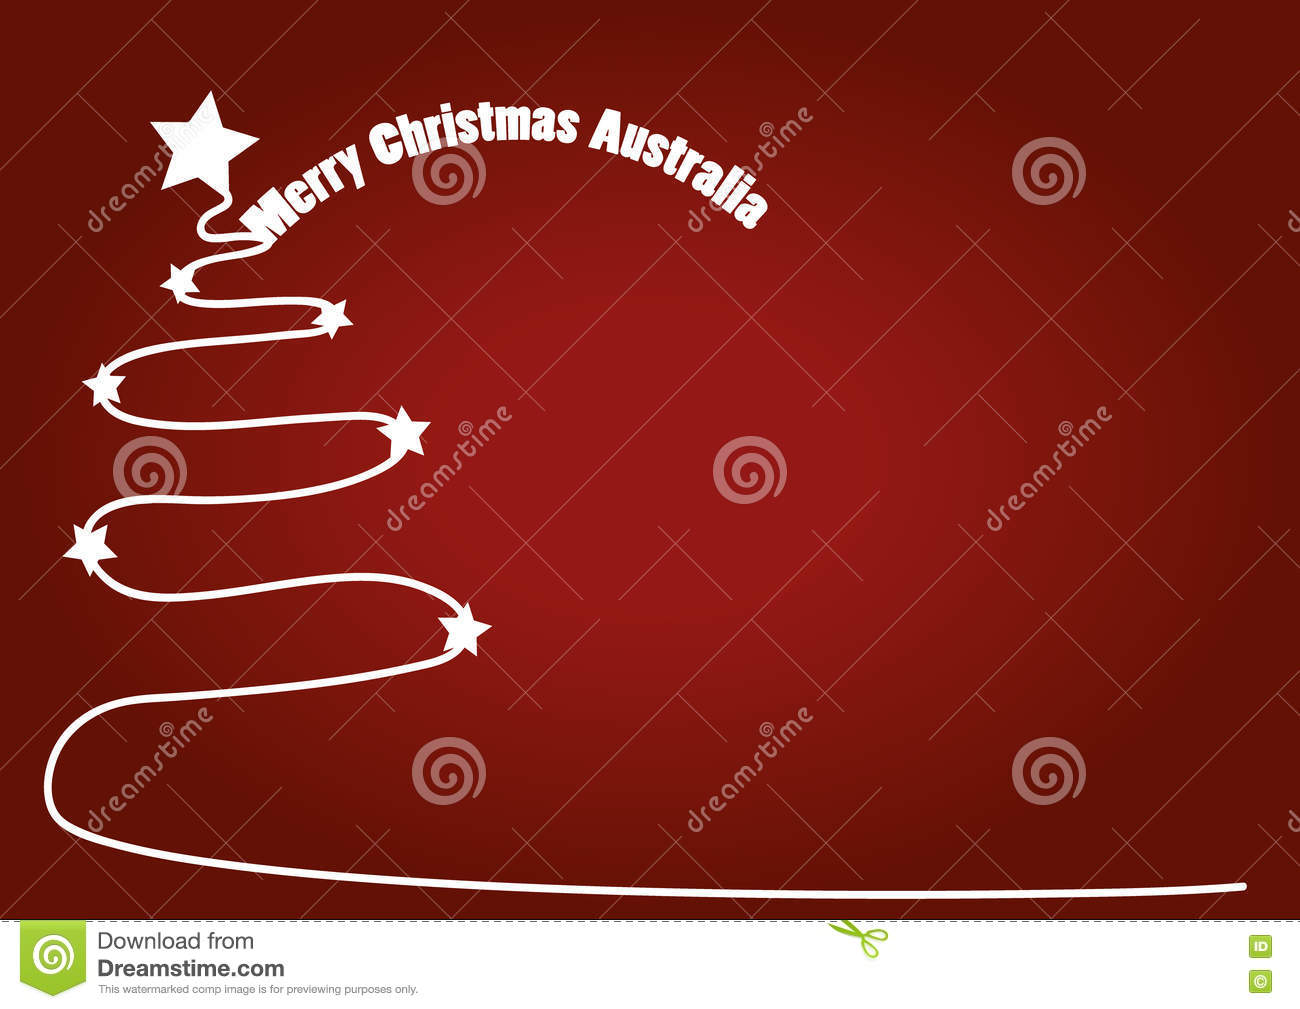 Christmas In Australia Background.Christmas Red Background With White Christmas Tree And